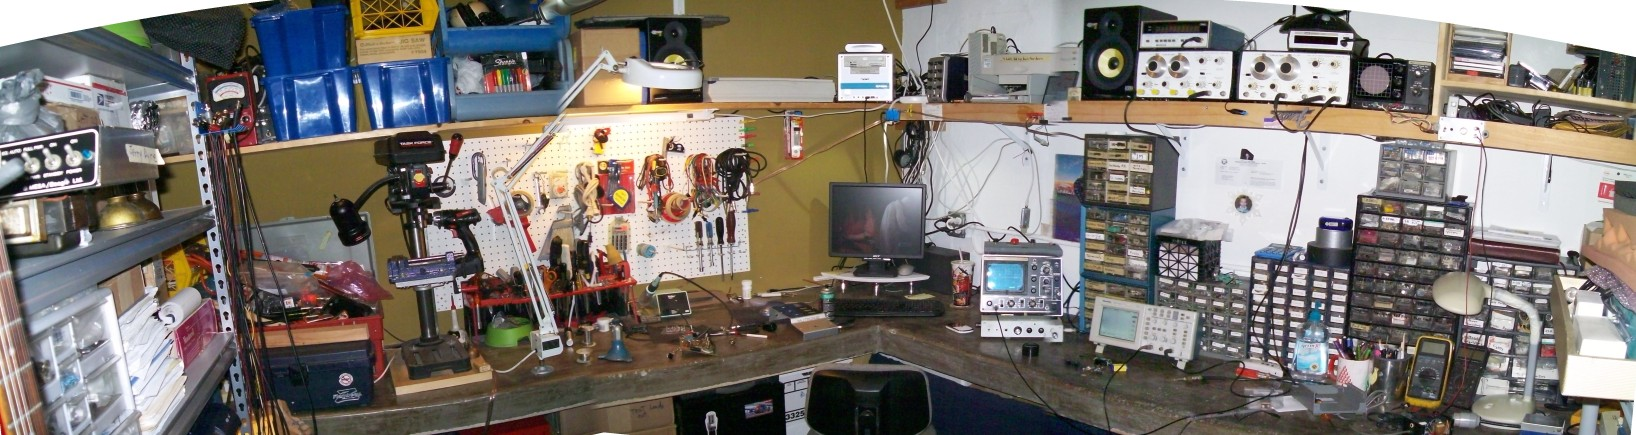 Work Bench June 2014